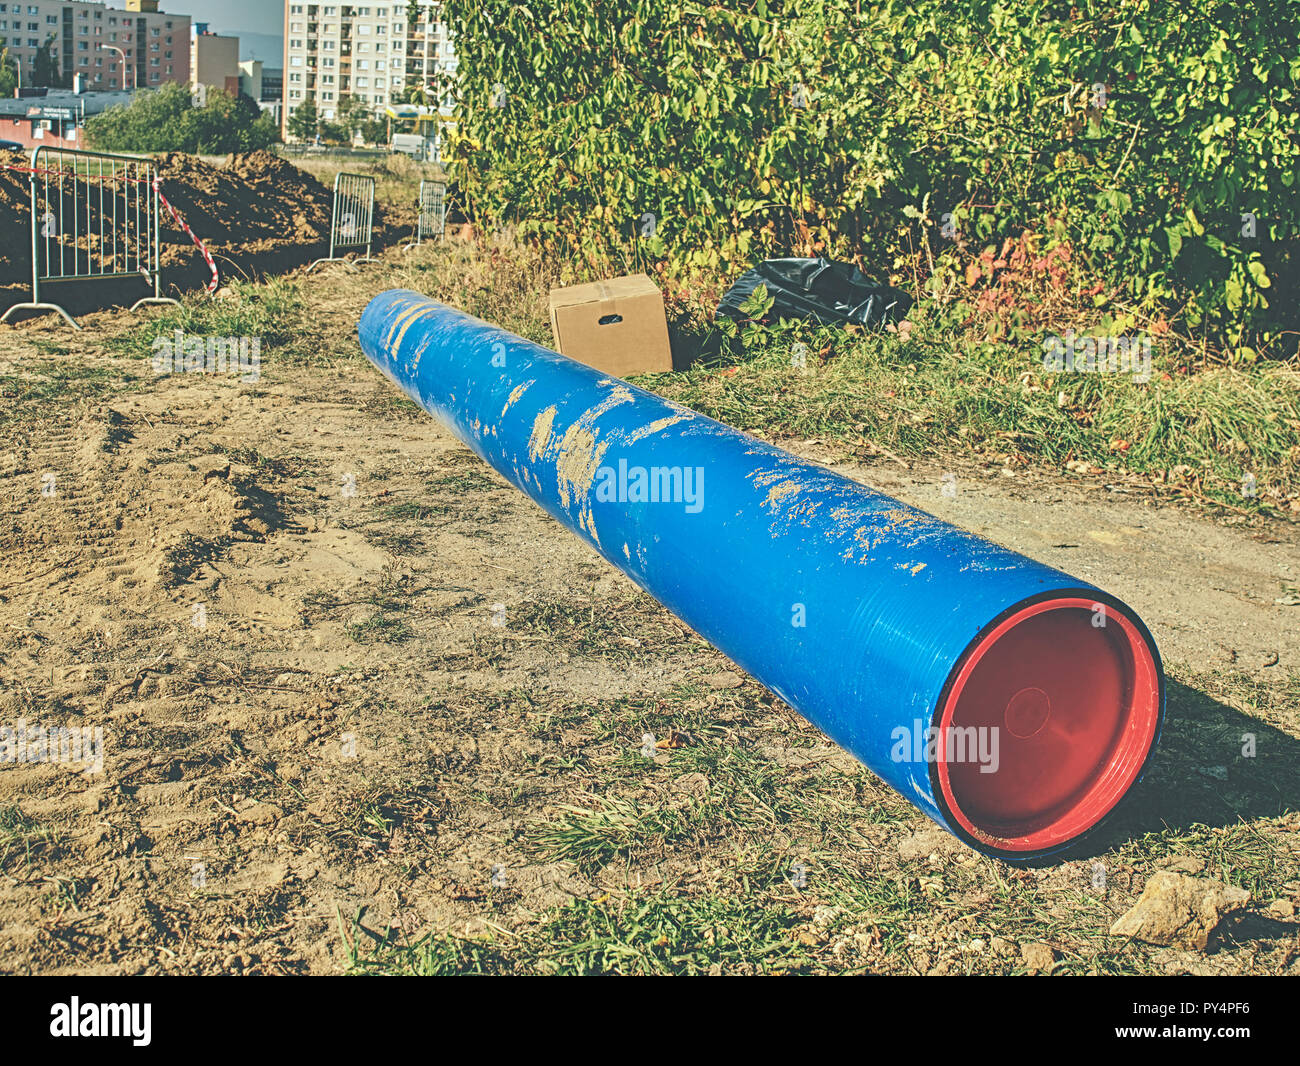 Plastic pipes for drinking water.  Repairing of water supply interruption. Complete exchange of water supply transit. - Stock Image